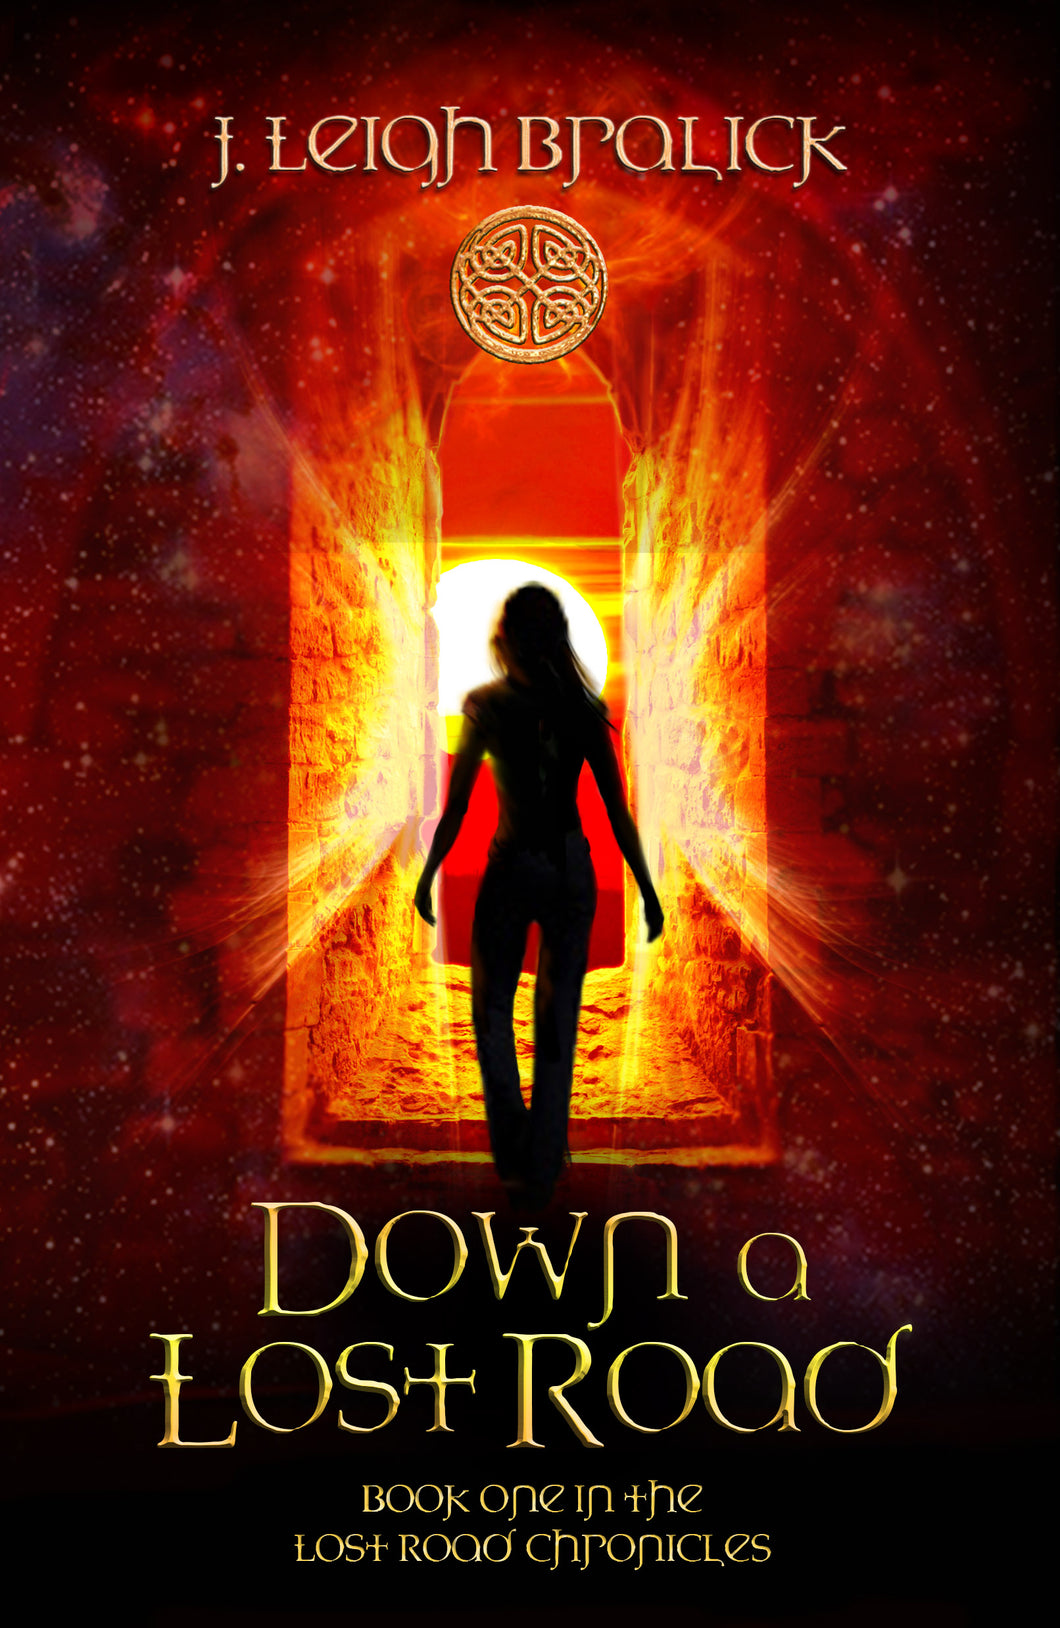 Down a Lost Road (Lost Road Chronicles #1)